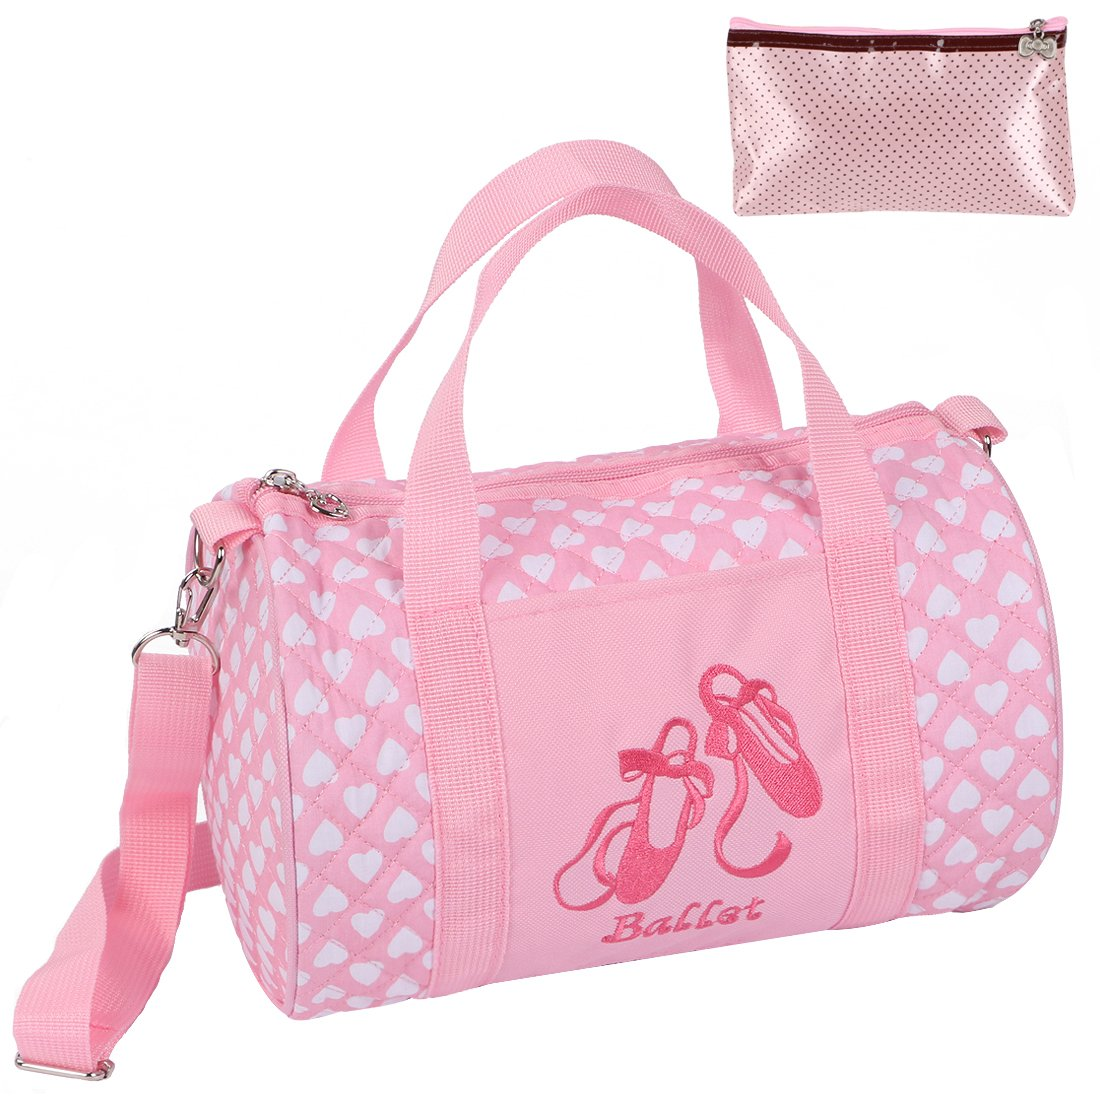 kilofly Girls Ballerina Ballet Tutu Duffel Crossbody Dance Bag + Zippered Pouch AWP429